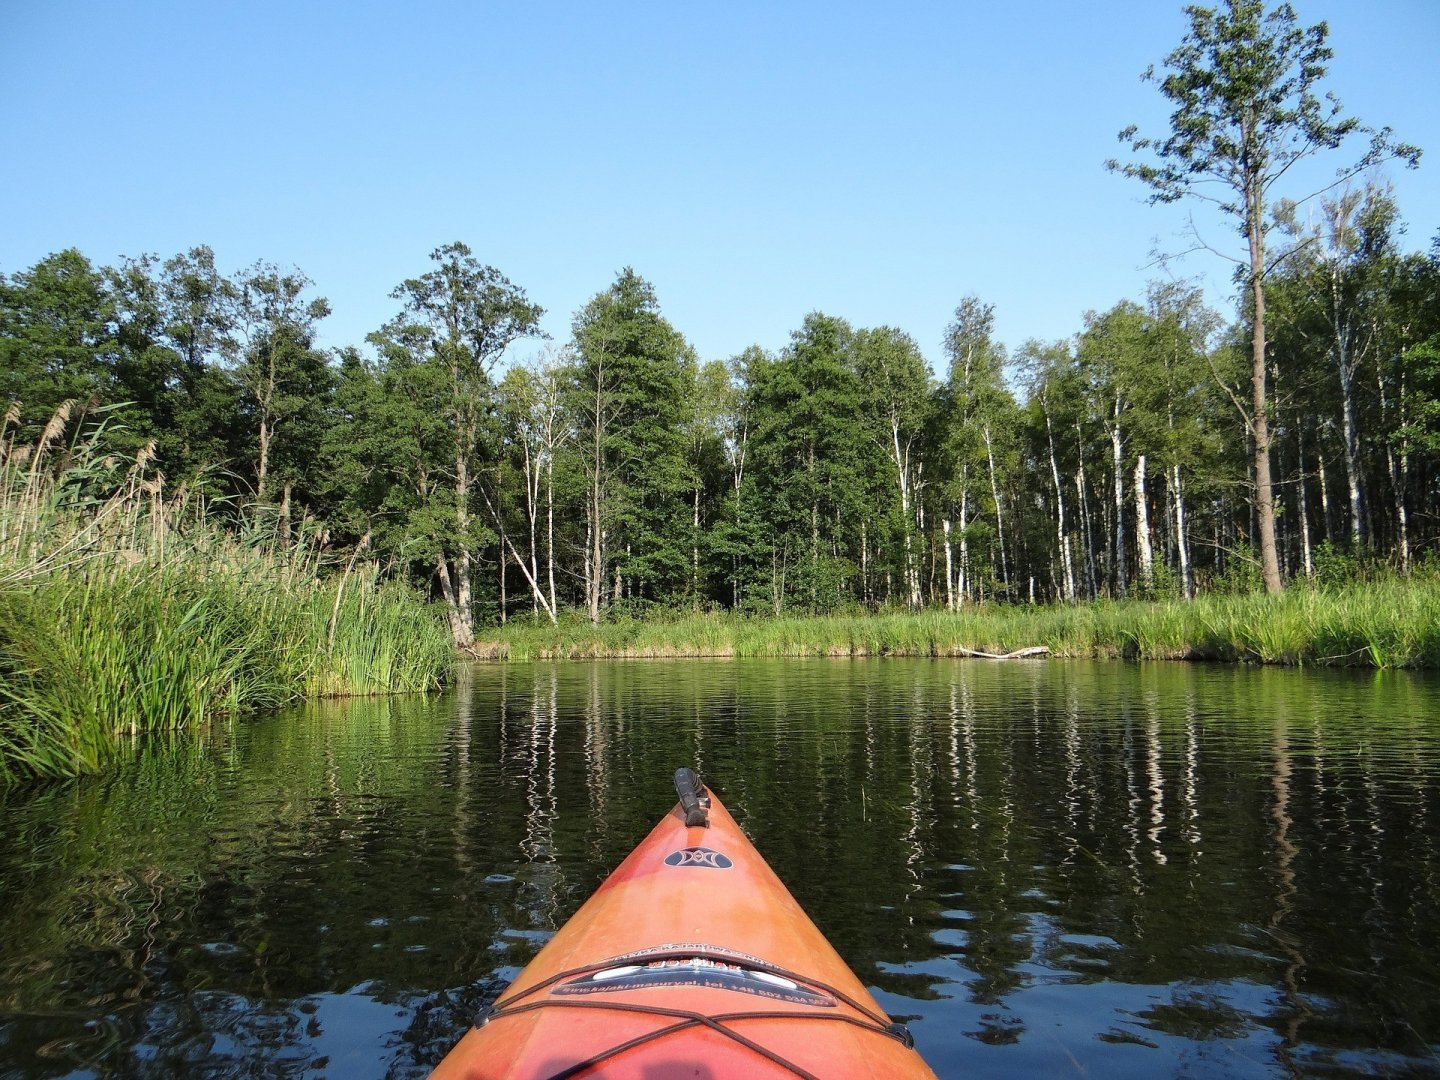 Canoeing in Poland